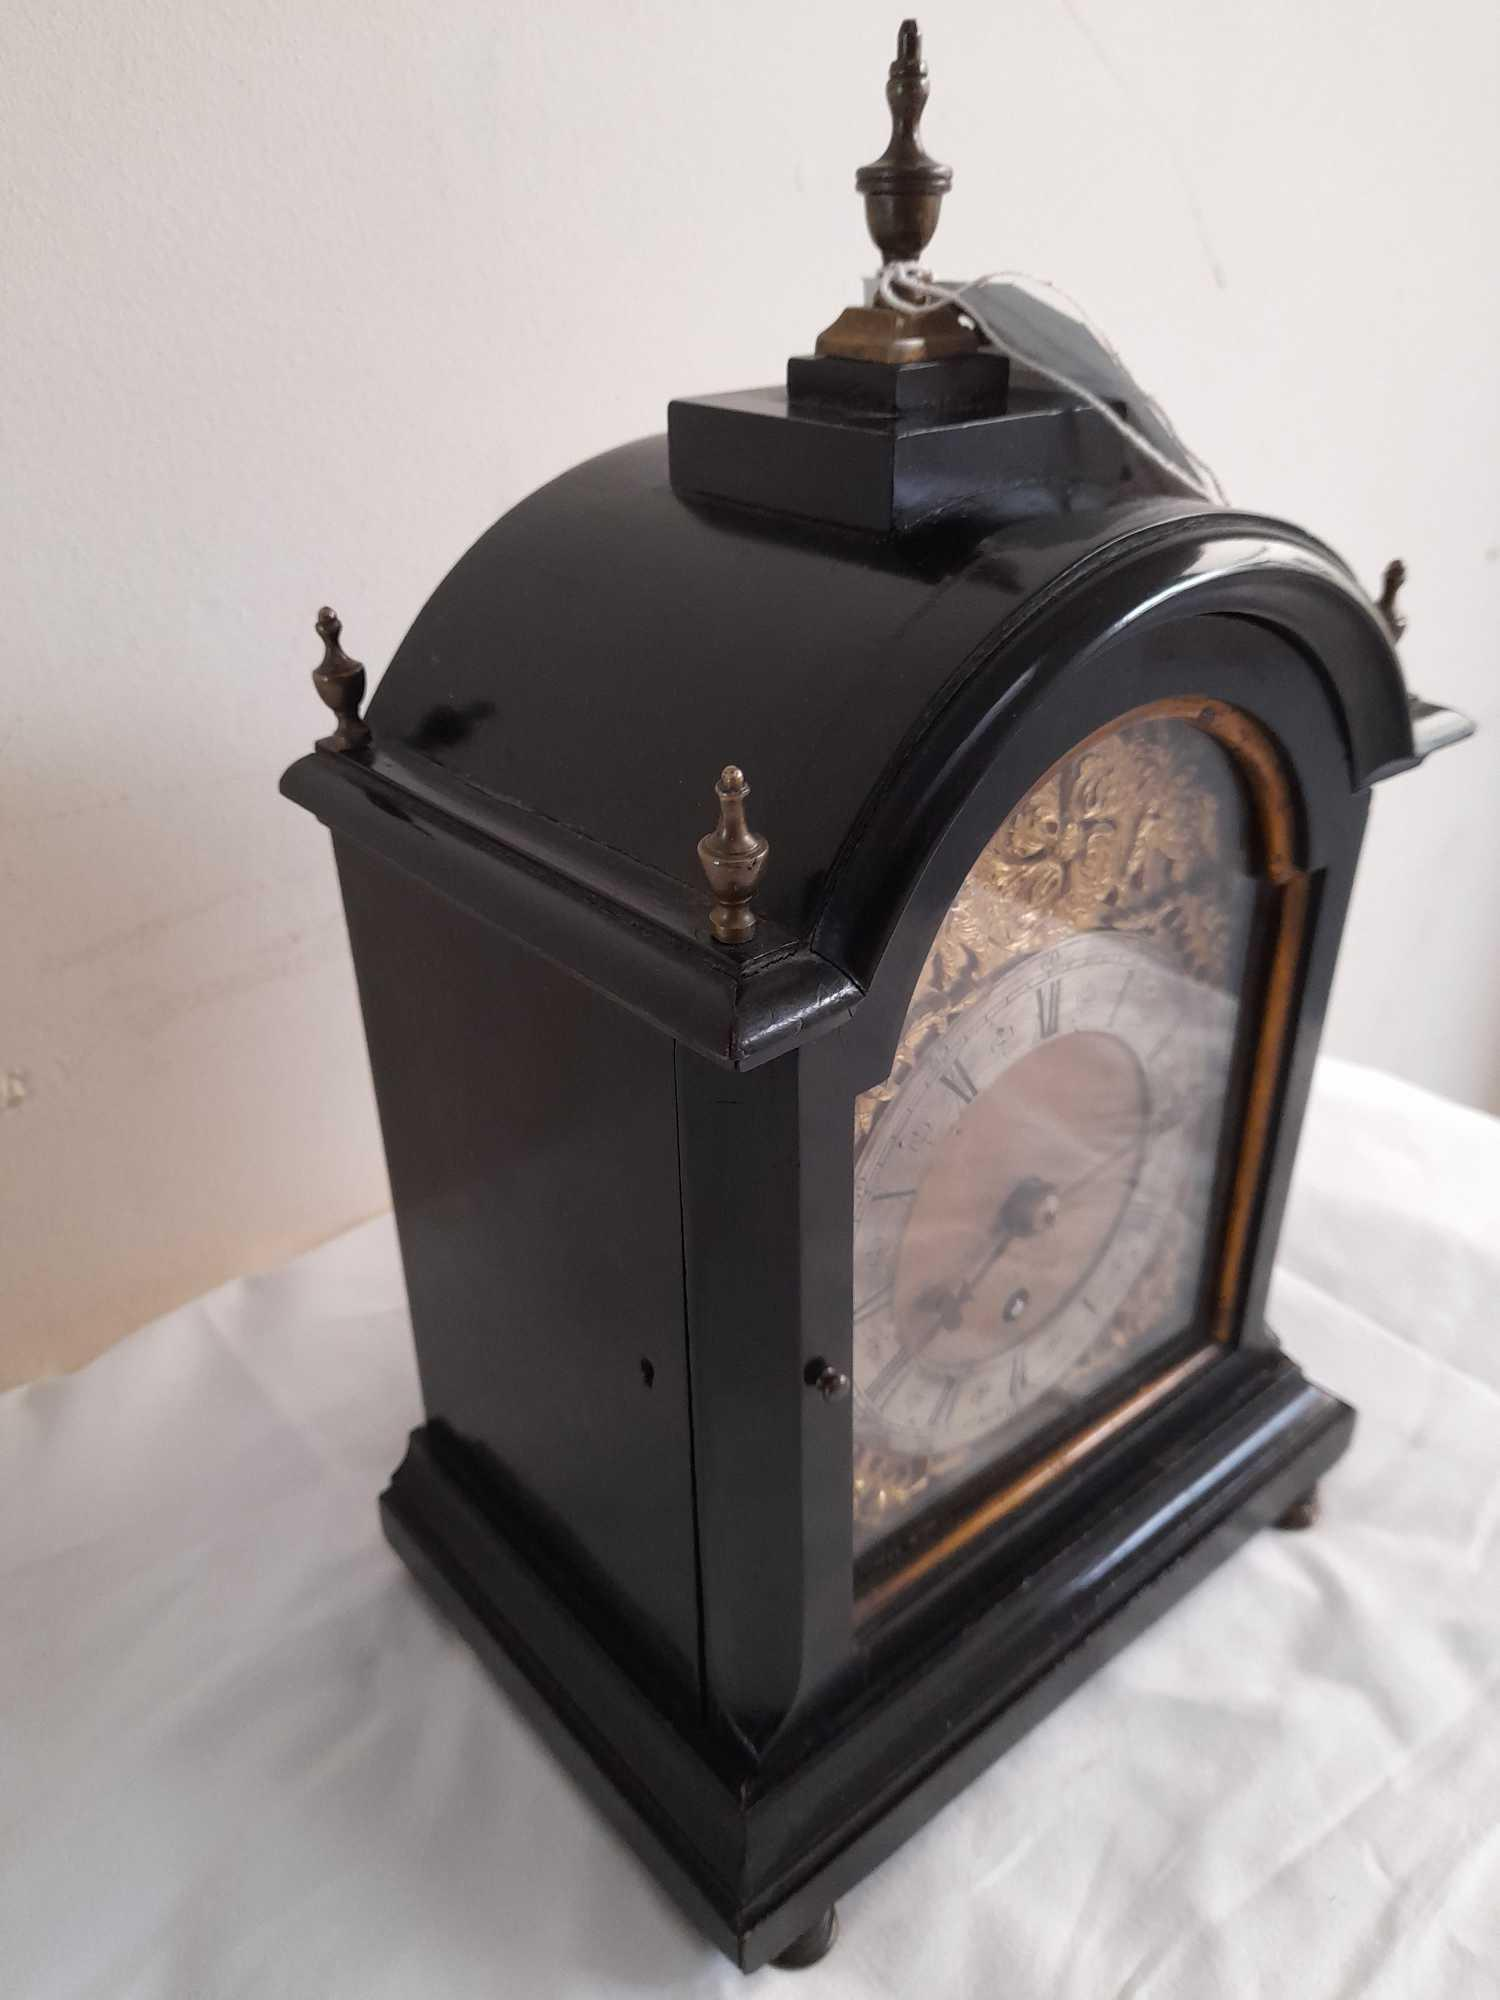 DENT LONDON SMALL CLOCK- ENGINE TURNED INTERNAL PLATES - Image 4 of 9